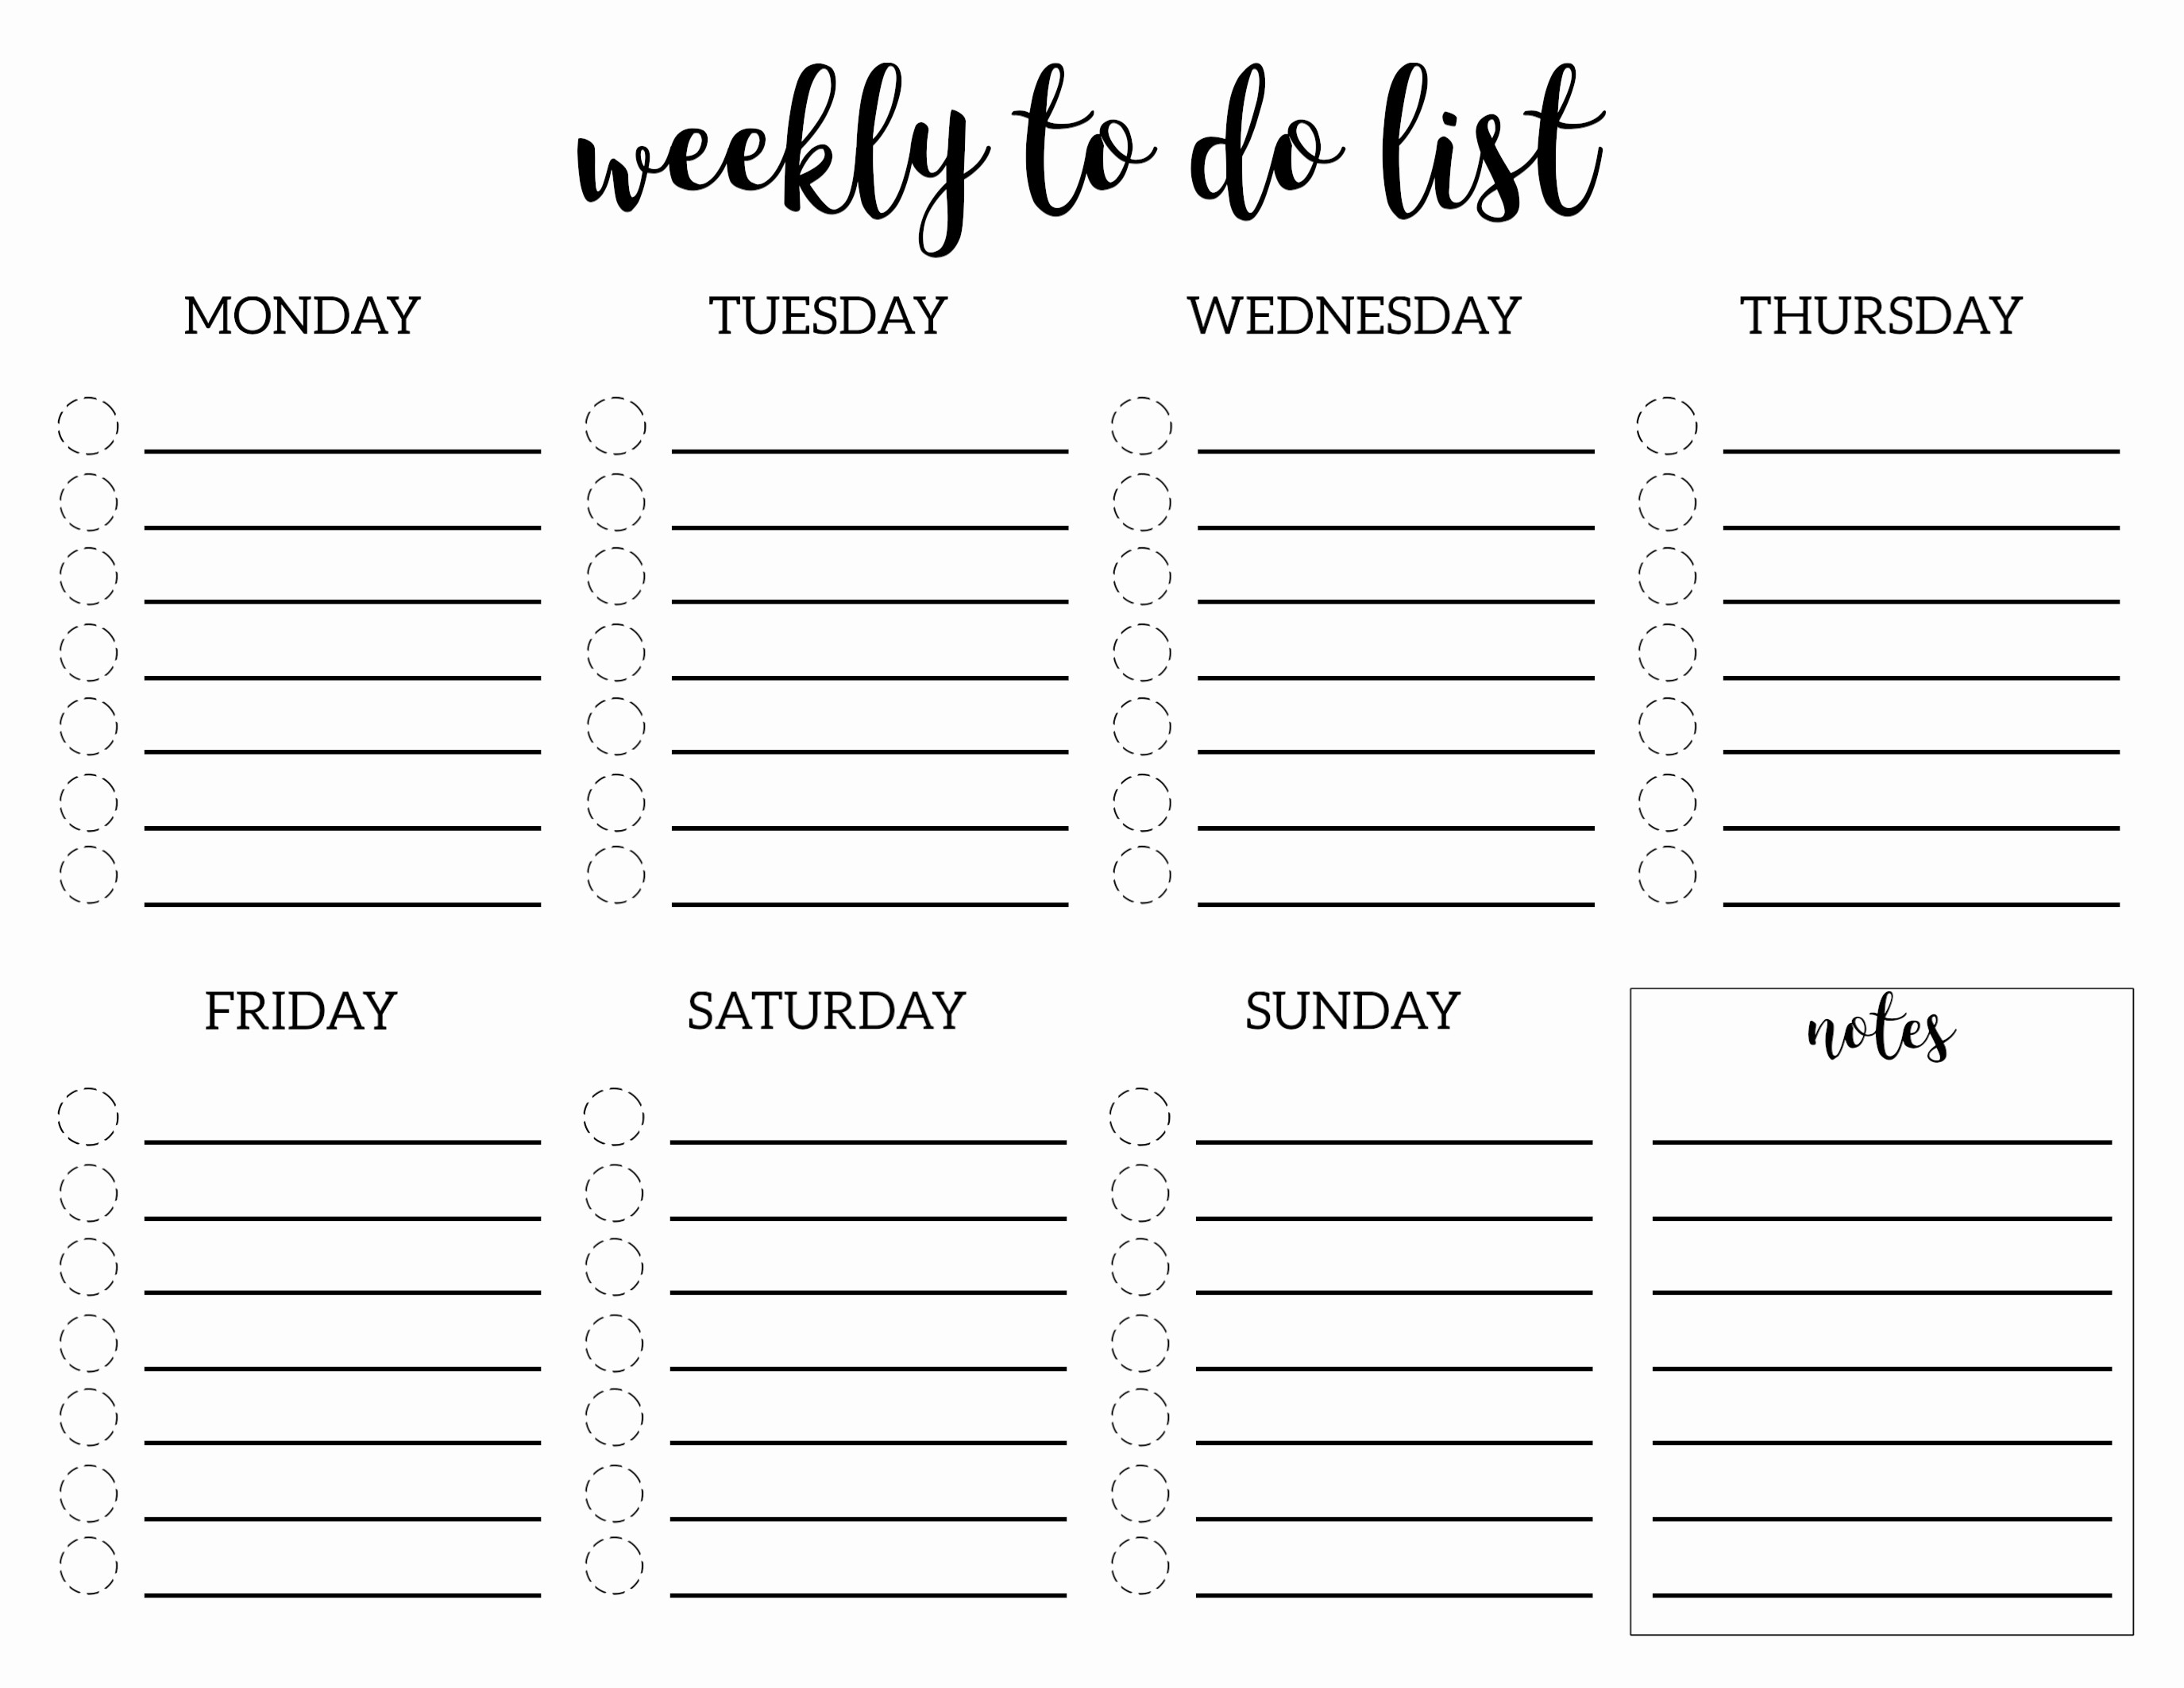 To Do List Weekly Template Awesome Weekly to Do List Printable Checklist Template Paper